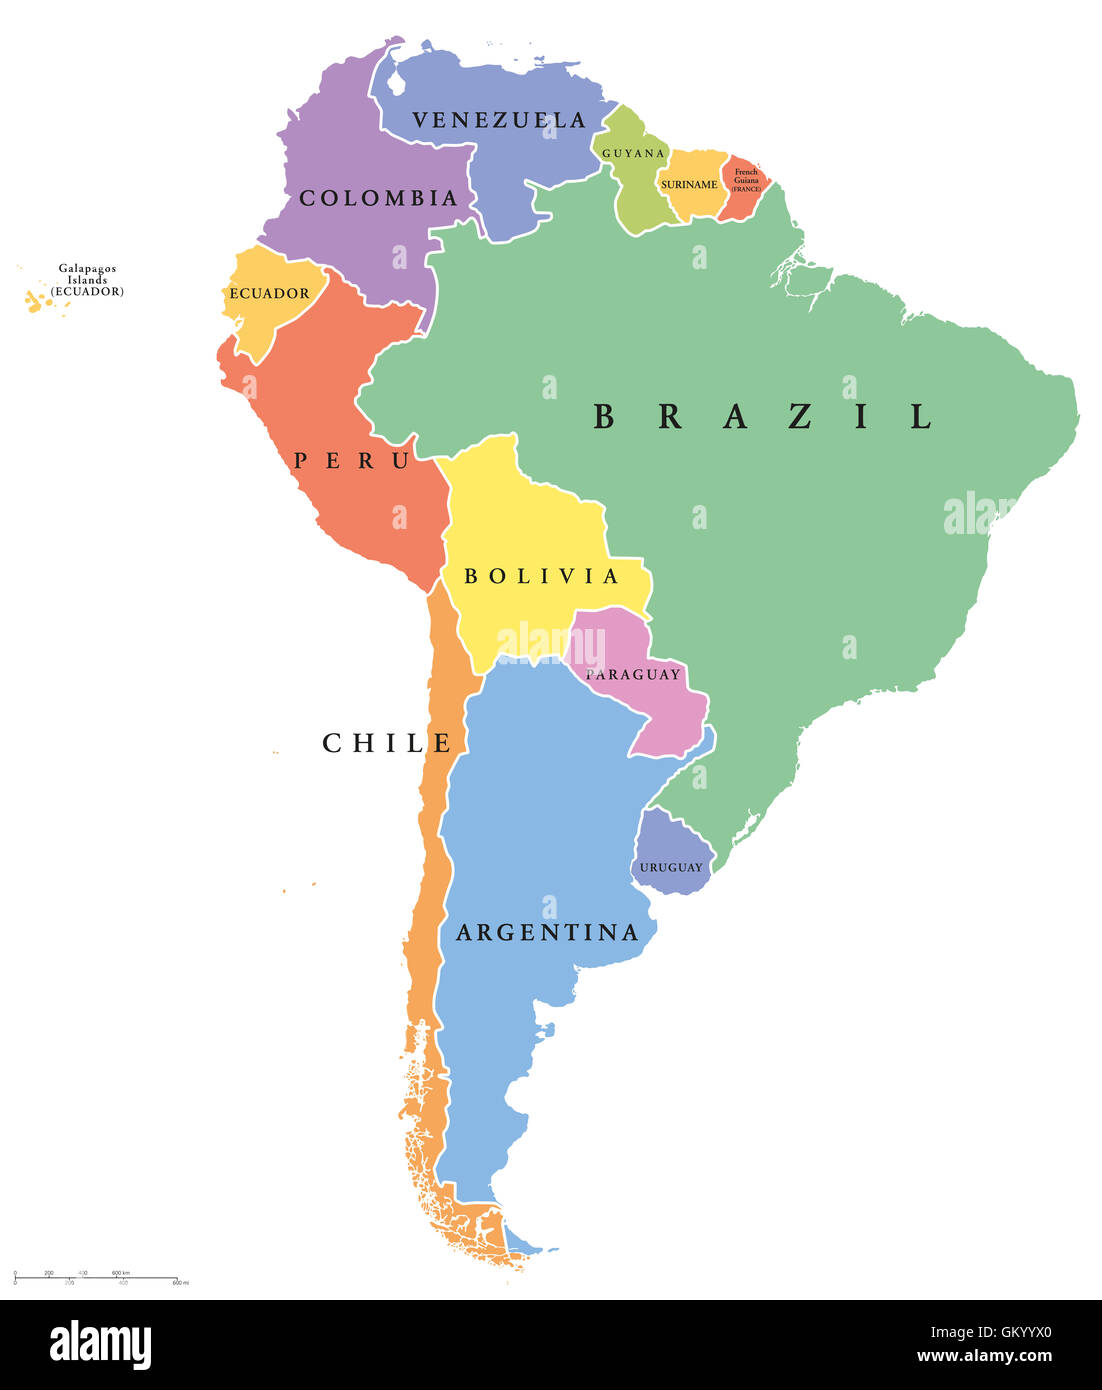 South America Single States Political Map All Countries In - Map of all countries